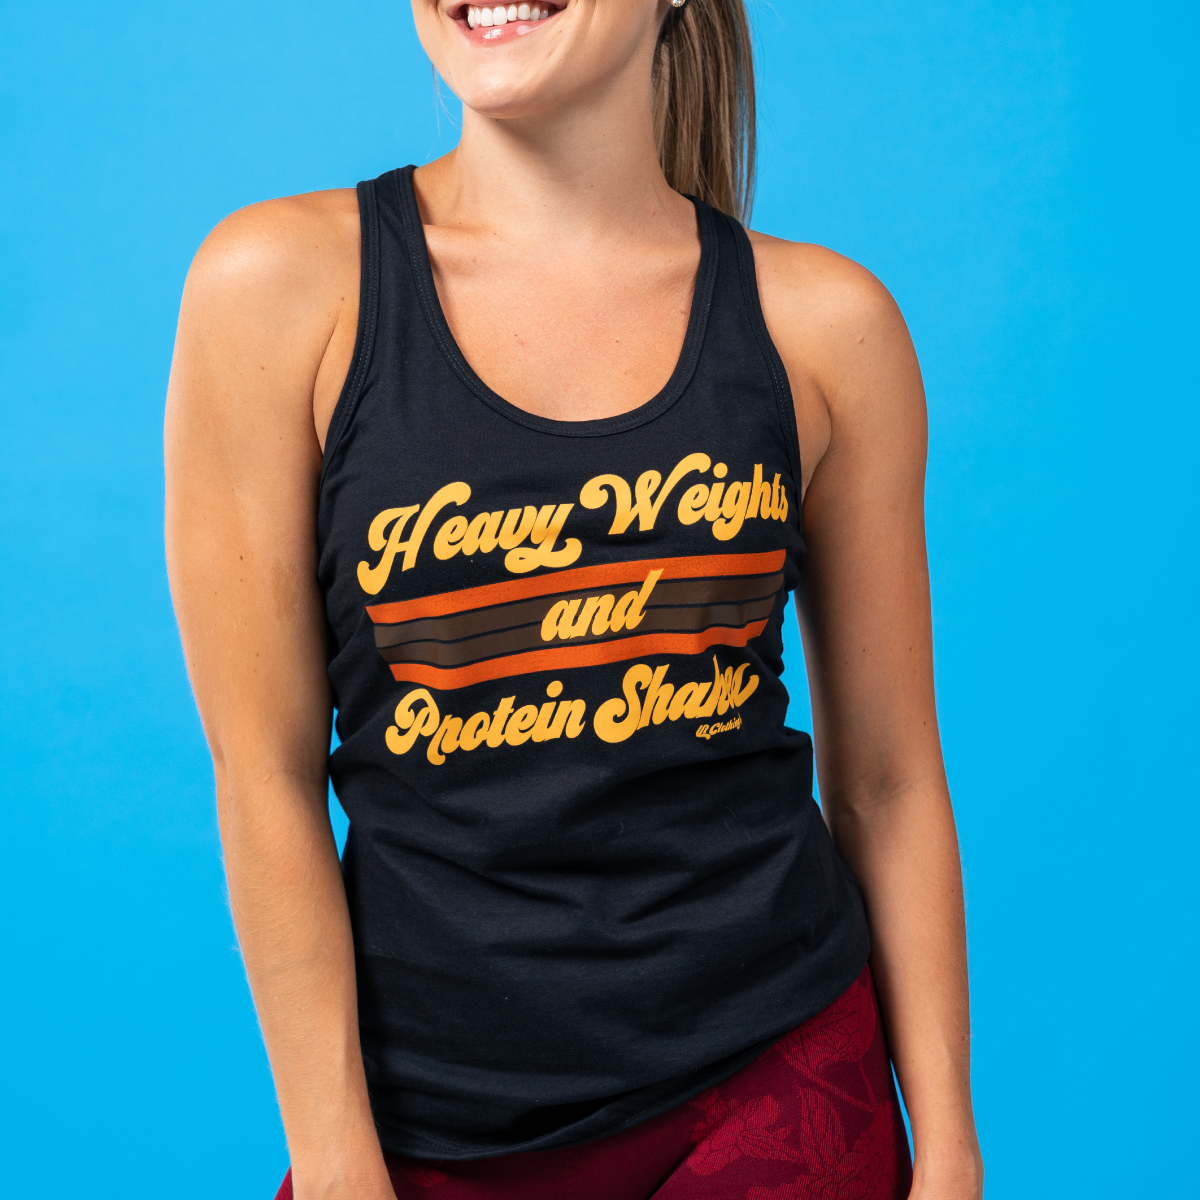 Heavy Weights & Protein Shakes Classic Racerback Tank